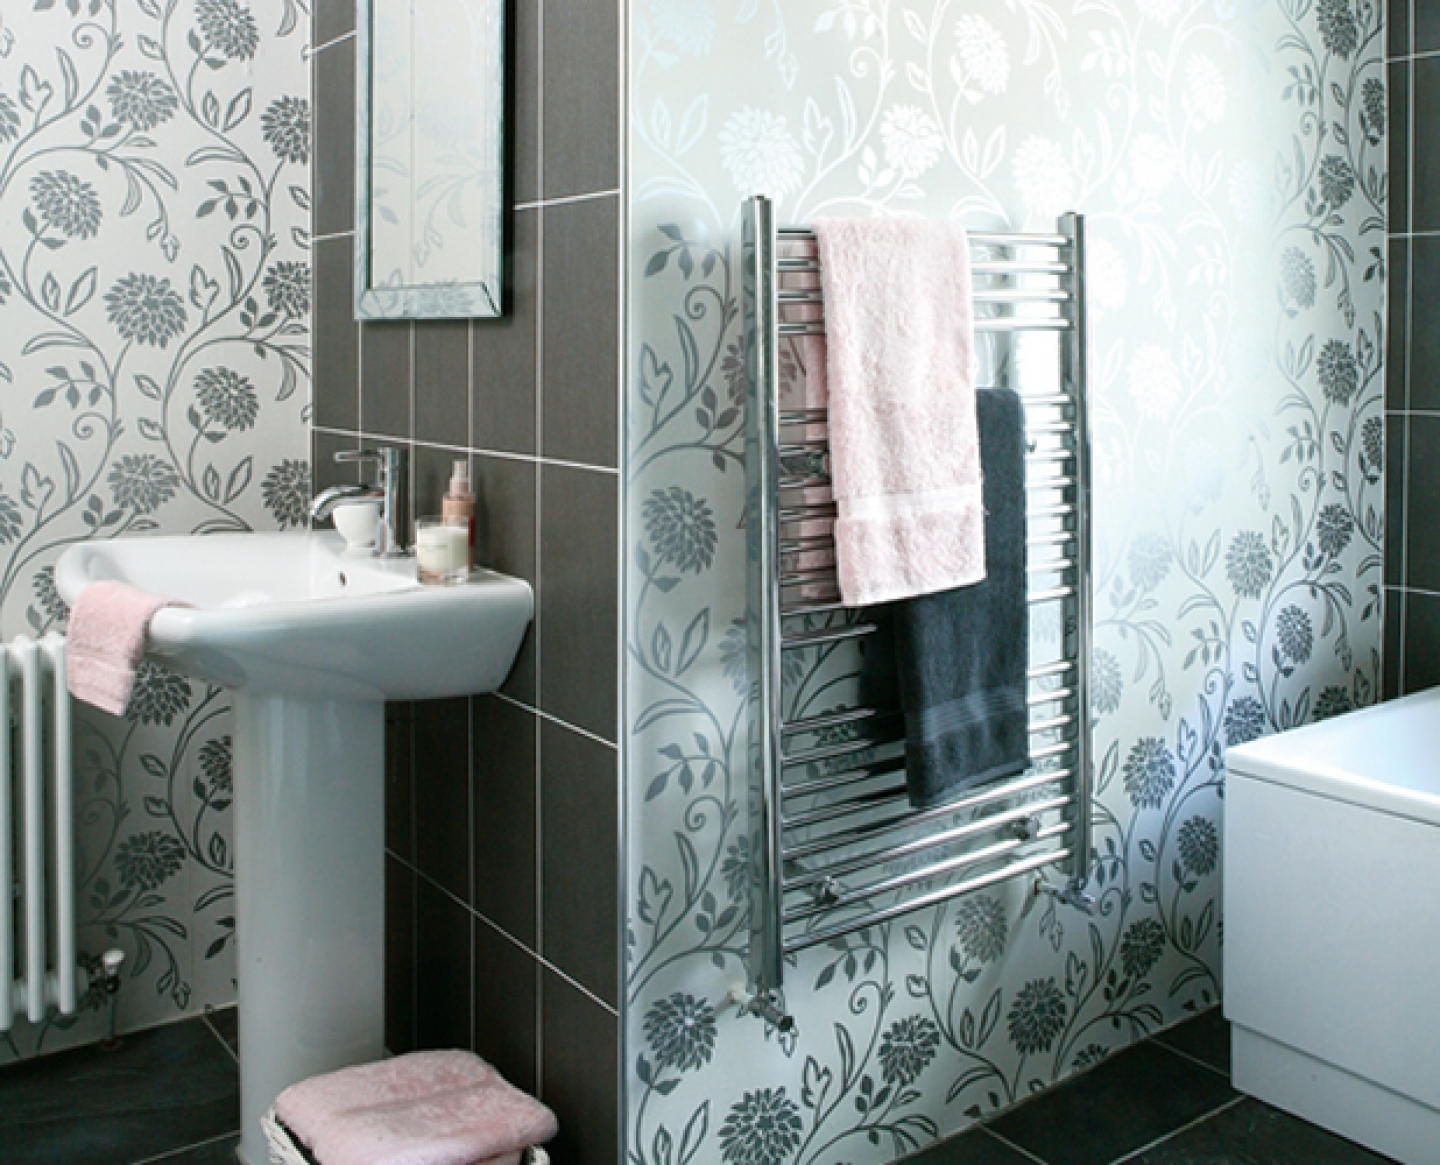 Bathroom Wallpaper ideas 2016 New